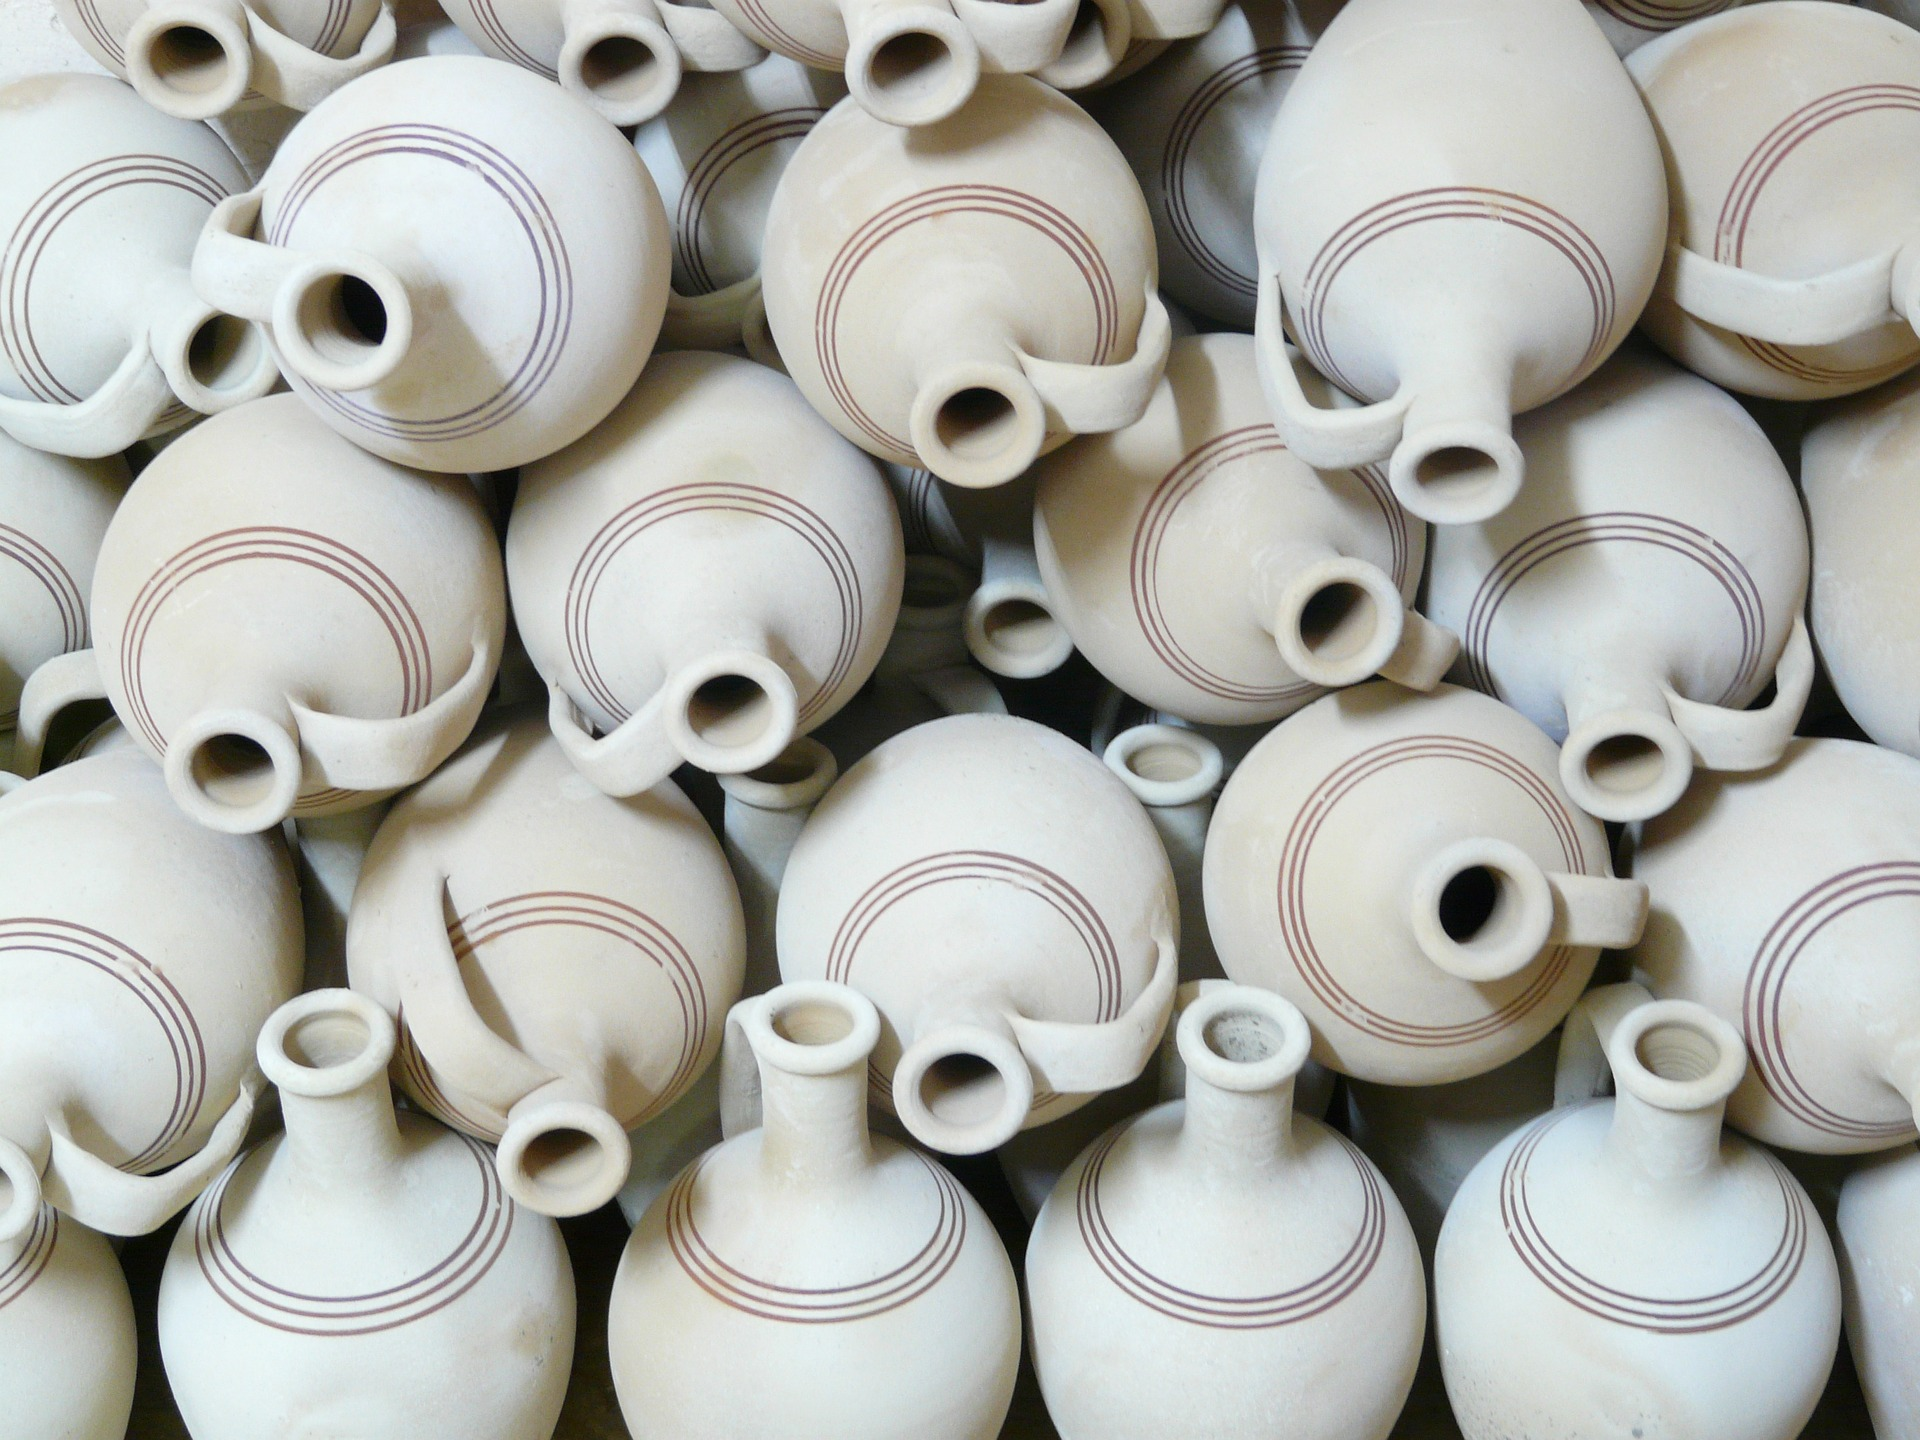 Biennial of Ceramics